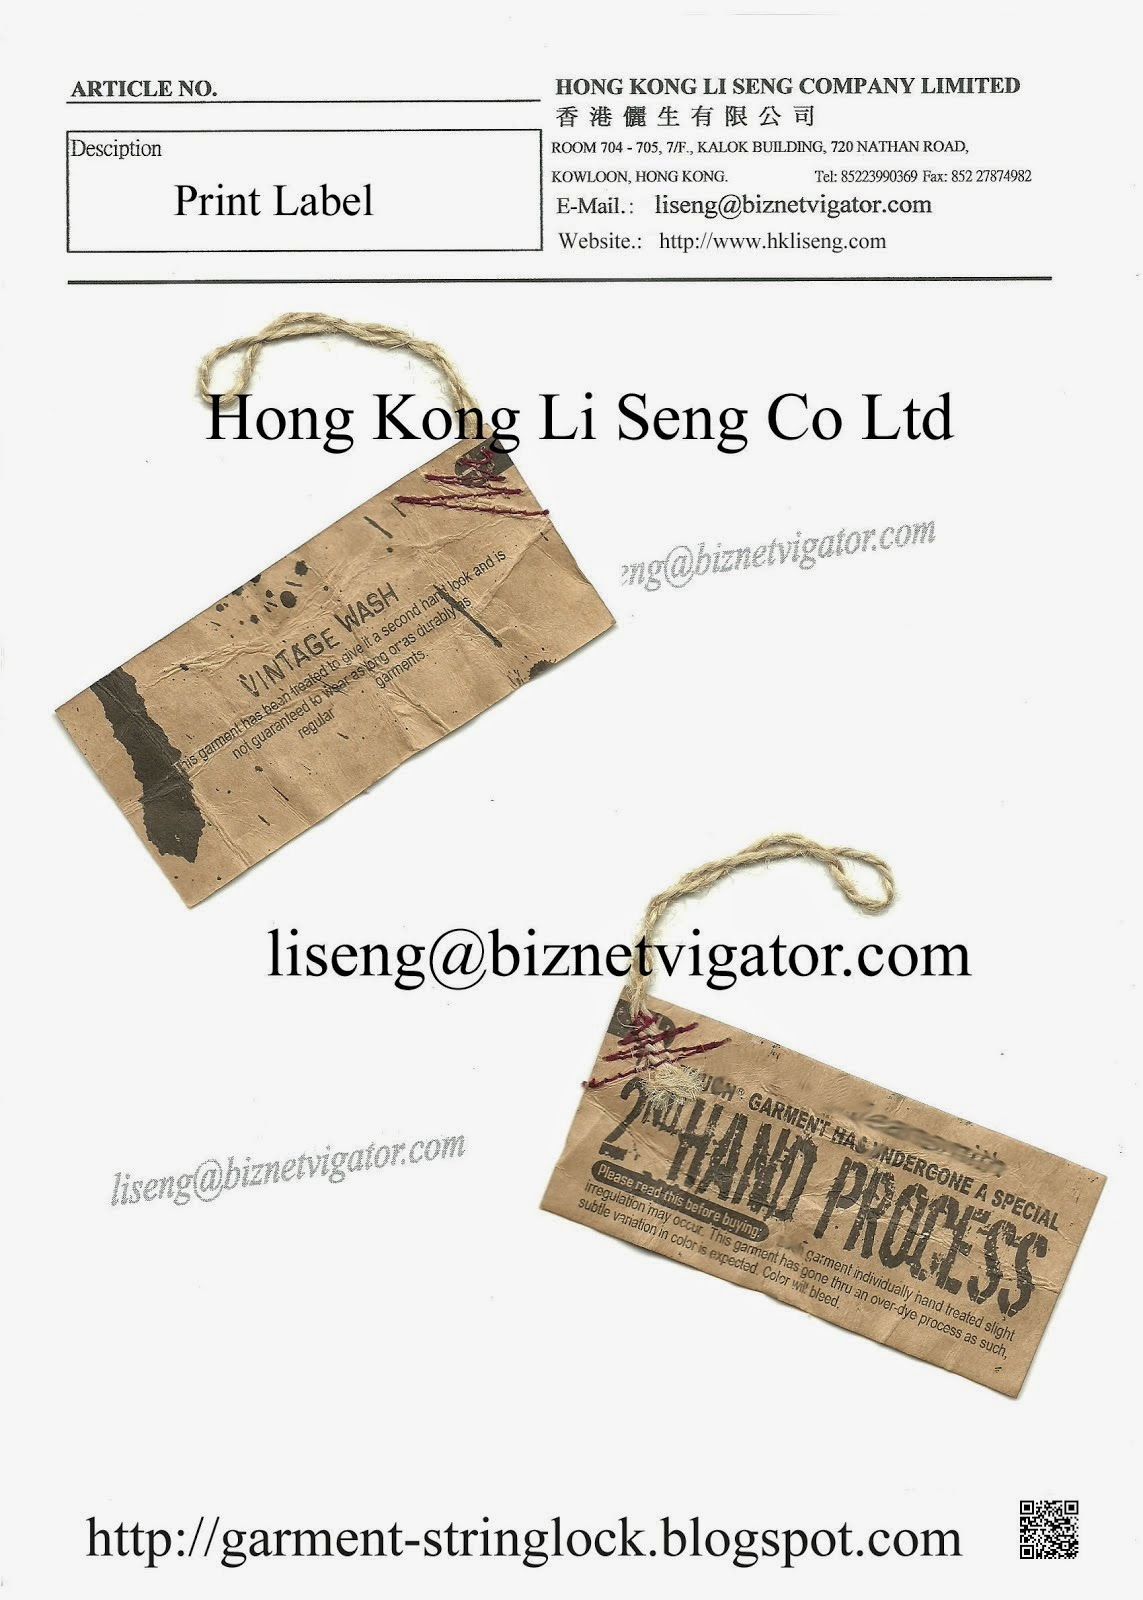 Garment Hemp Rope string lock With Paper Label Manufacturer - Hong Kong Li Seng Co Ltd